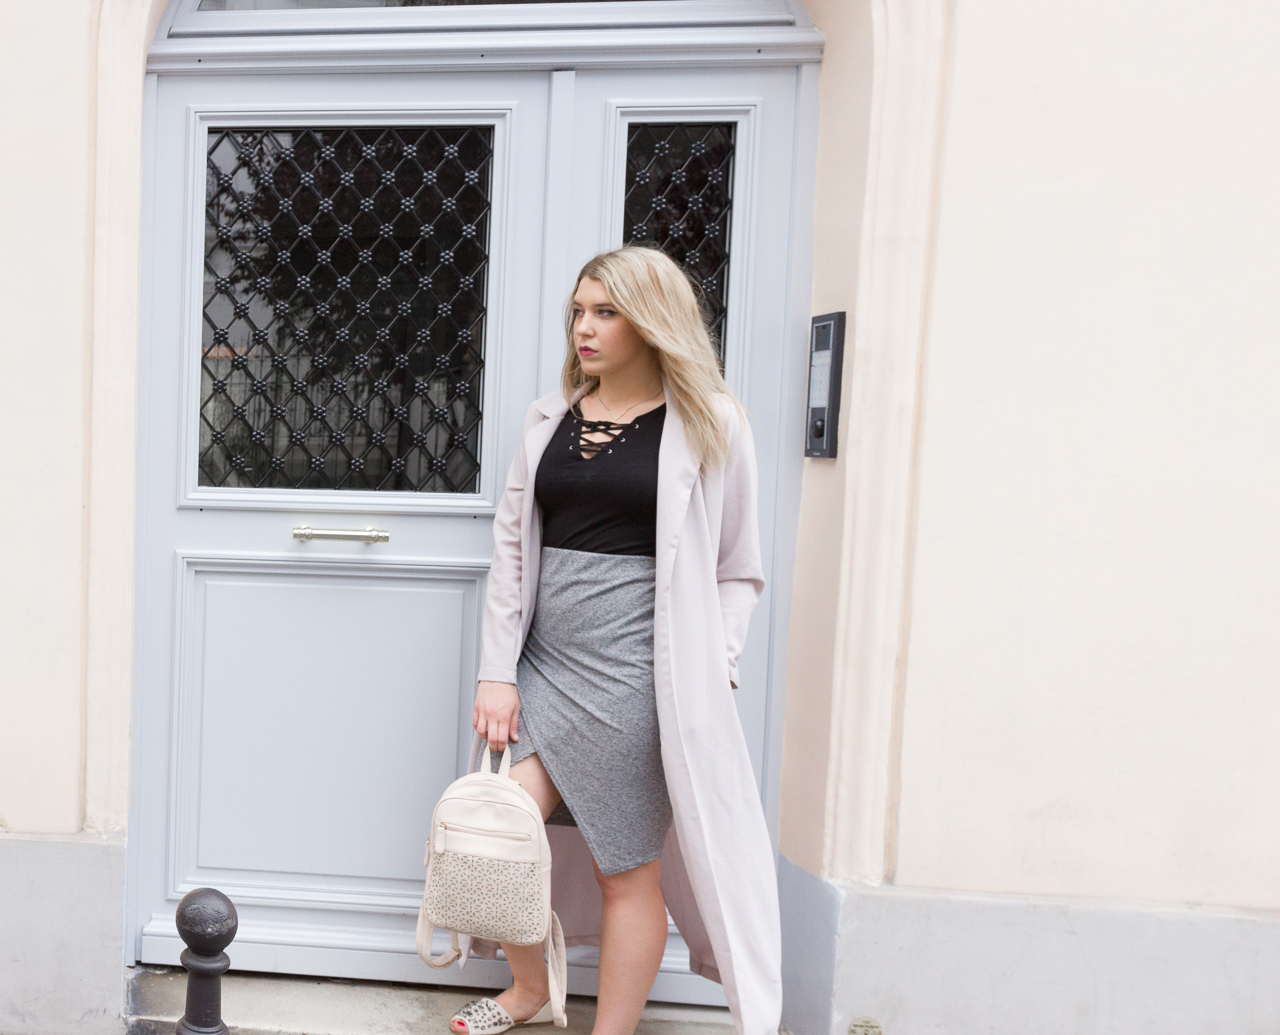 look blog blogueuse mode outfit fashion jupe portefeuille haut lacé missguided primark h&m justfab summer été